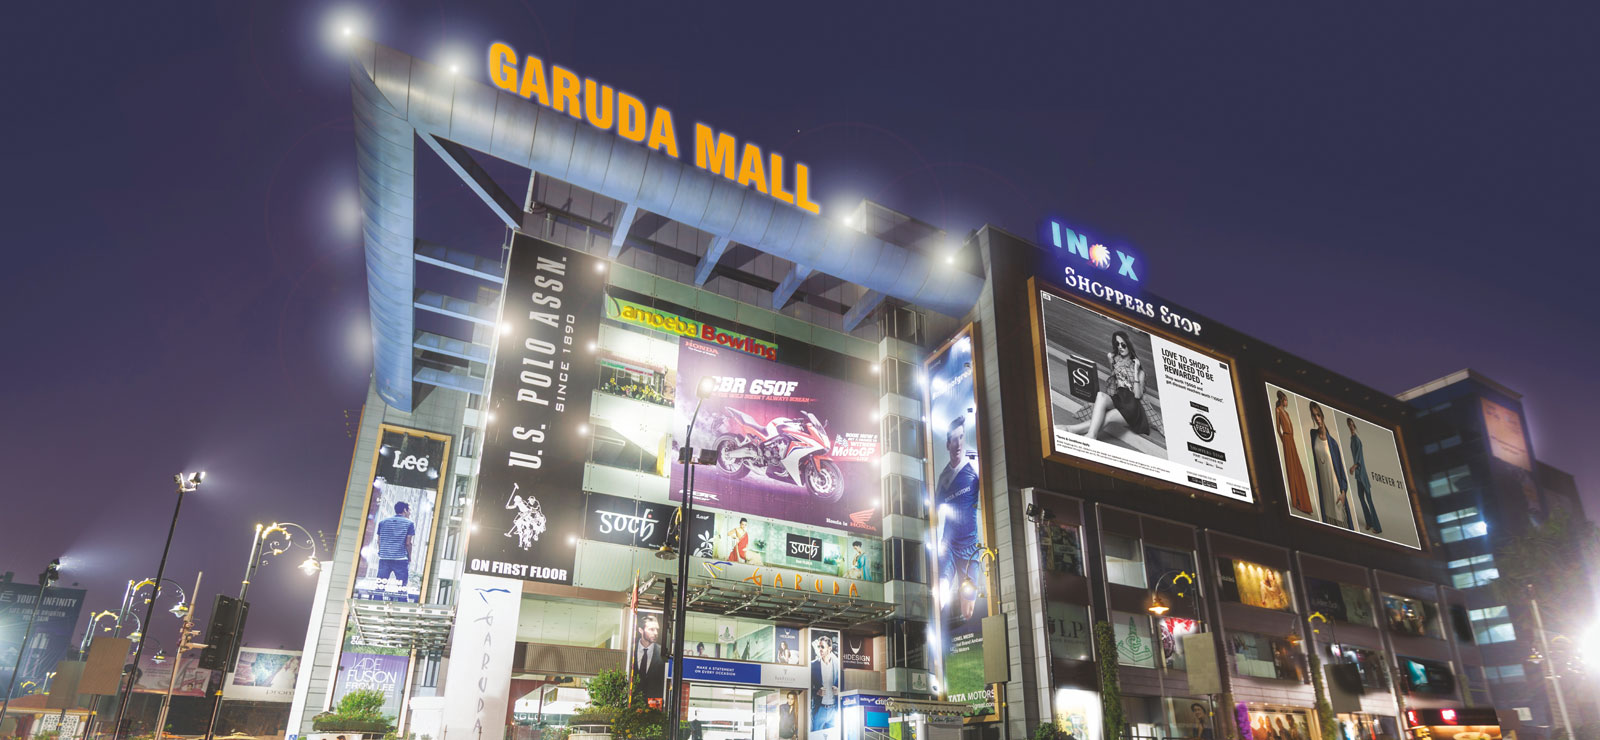 Garuda Mall, Bangalore Photo1